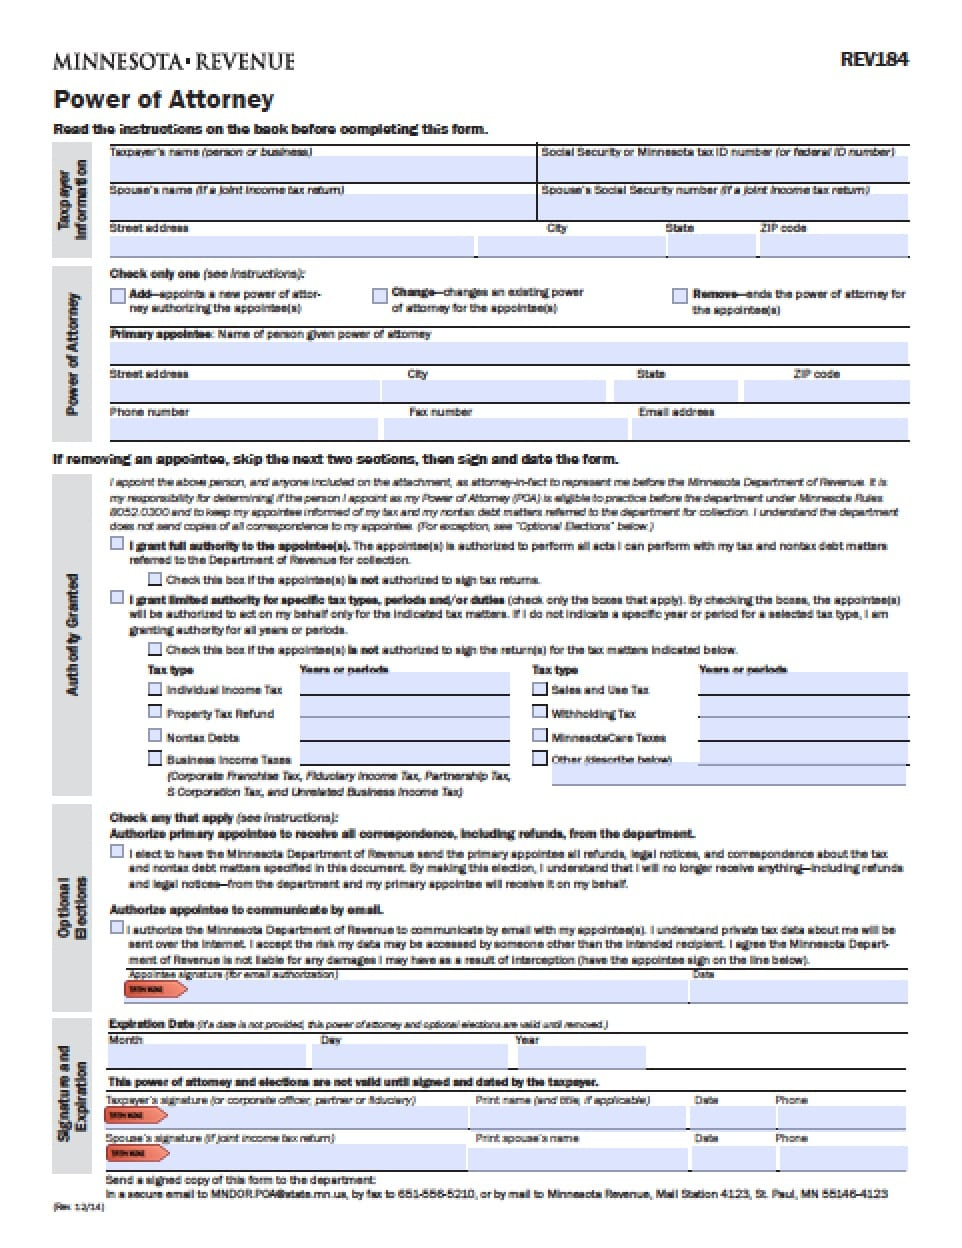 Irs form 8821 printable irs form 8821 falaconquin